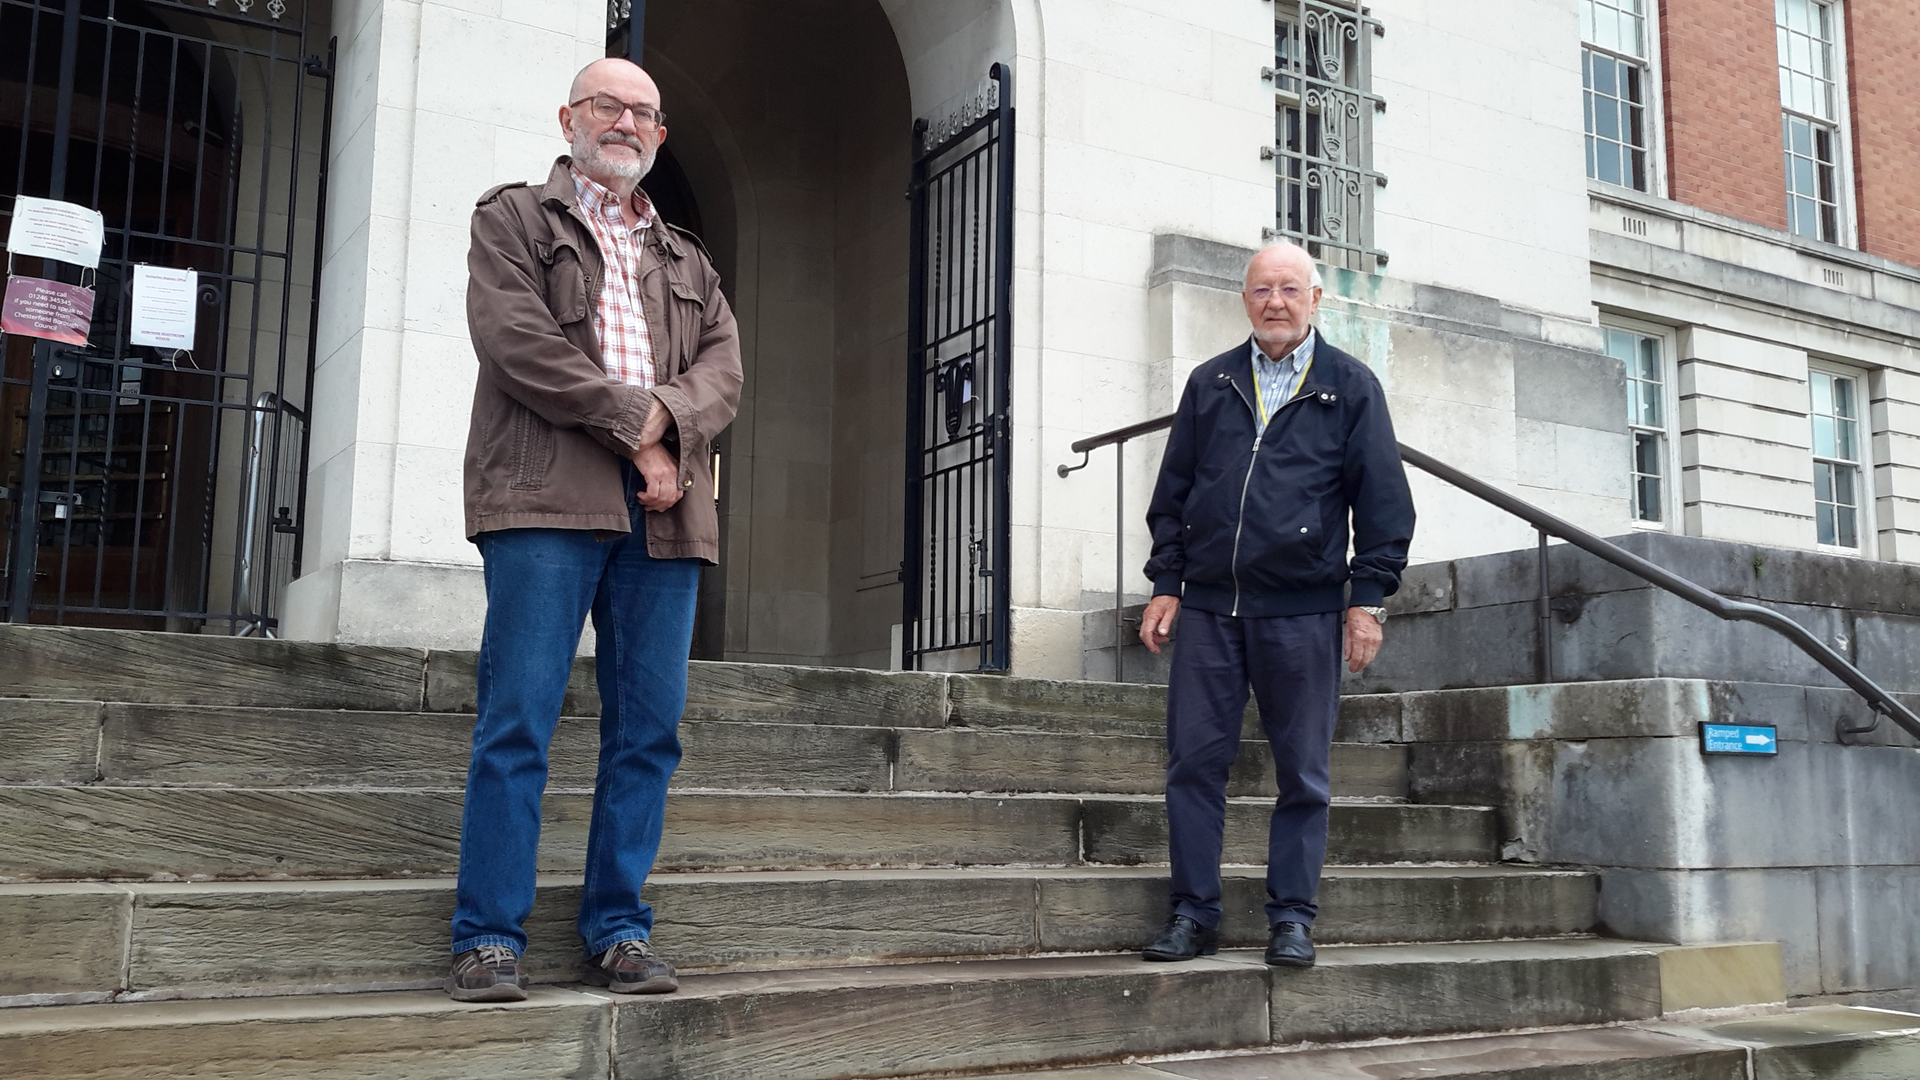 Cllrs Paul Niblock and Keith Falconer at Chesterfield Town Hall